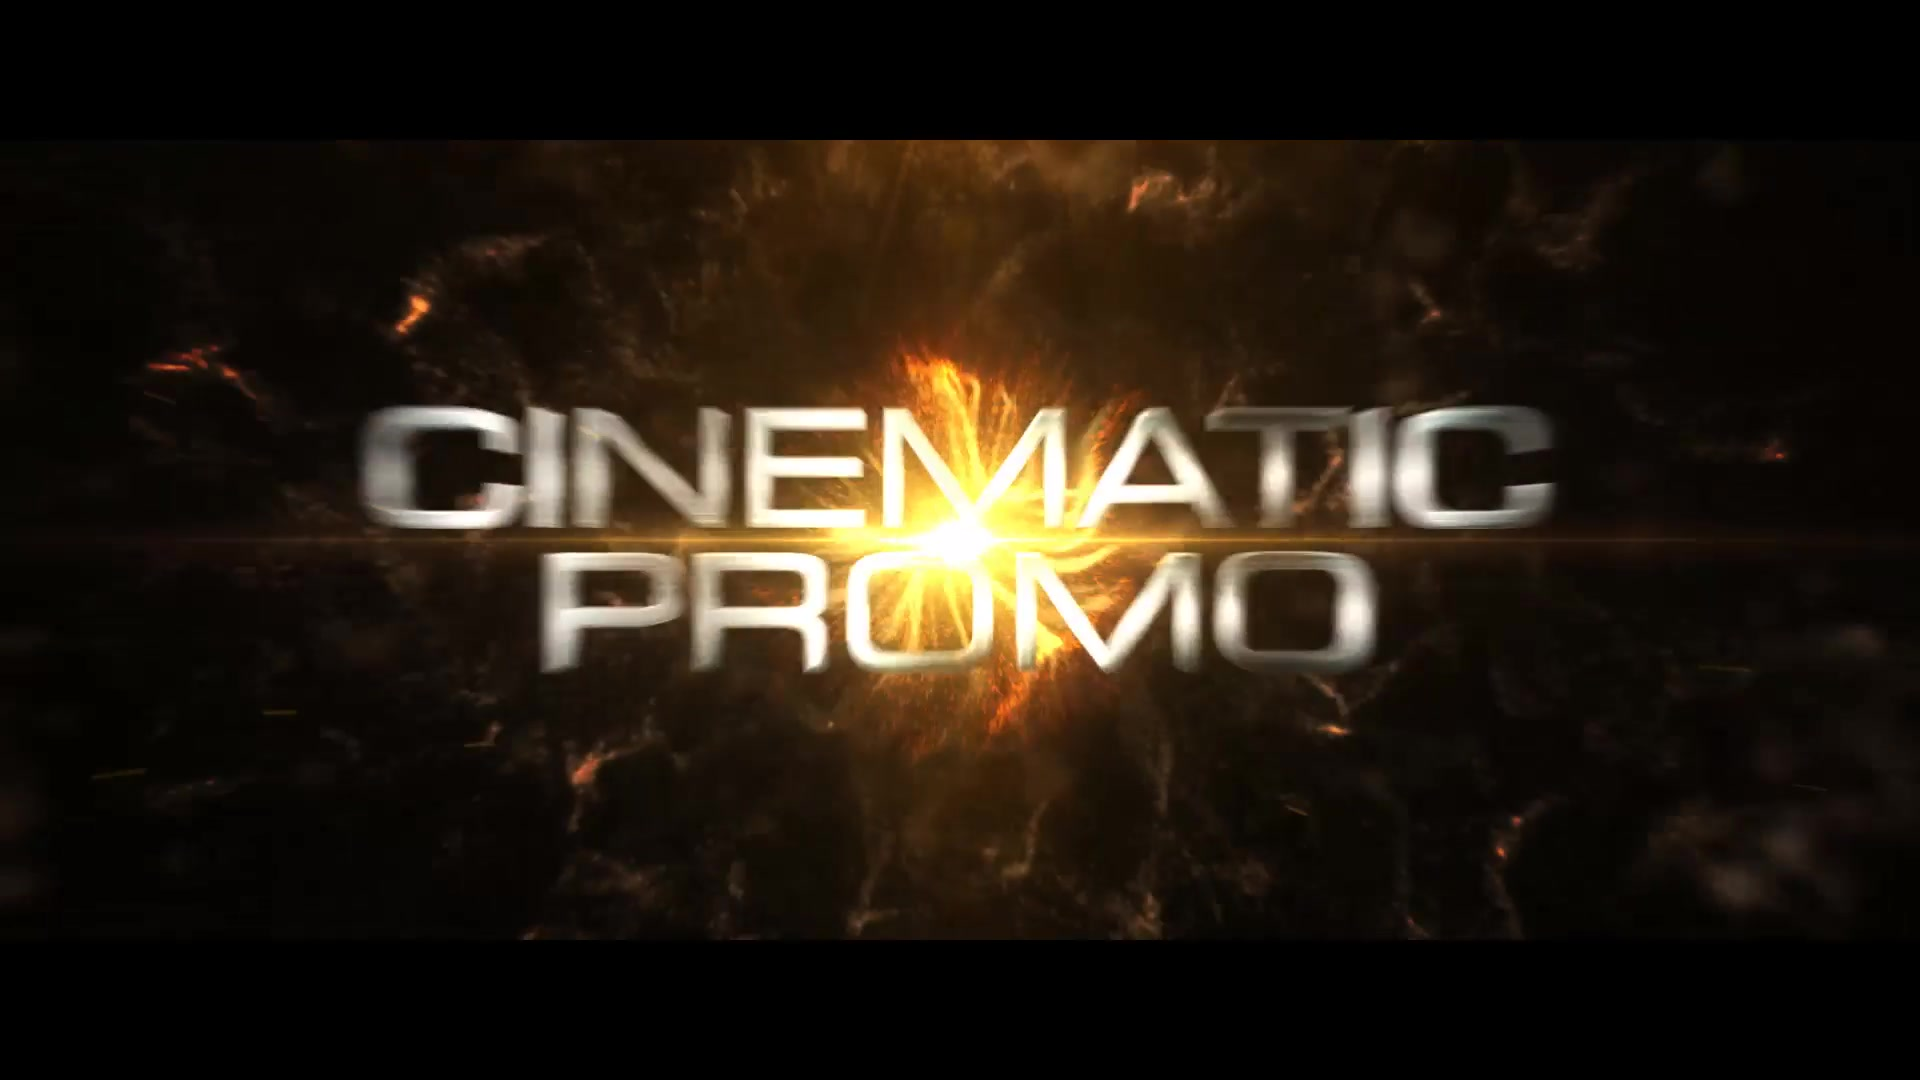 Cinematic Promo - Download Videohive 20537170